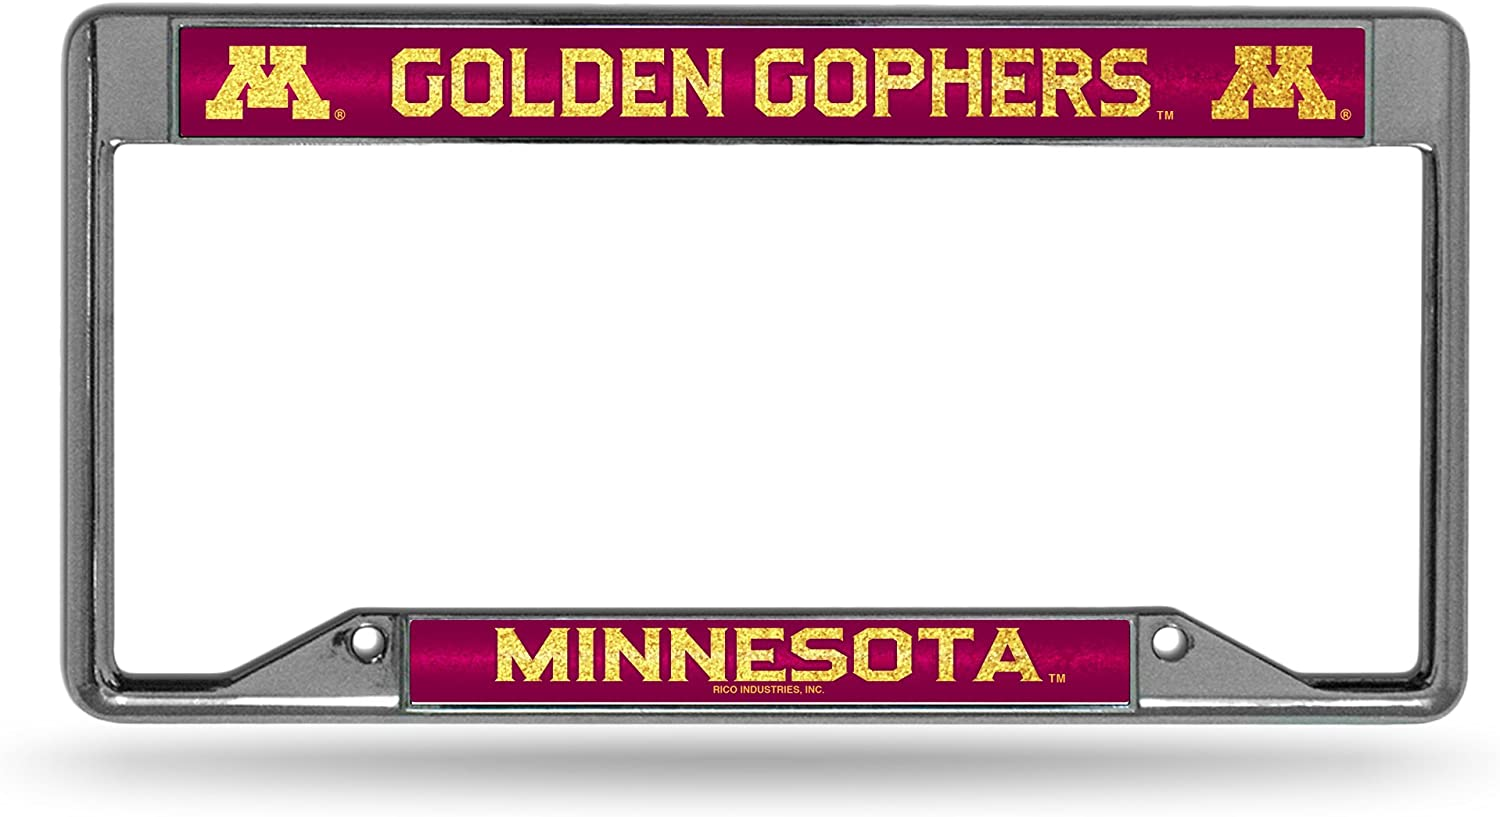 NCAA Minnesota Golden Gophers Bling Frame License Industry No. 1 Chrome Plate w Opening large release sale